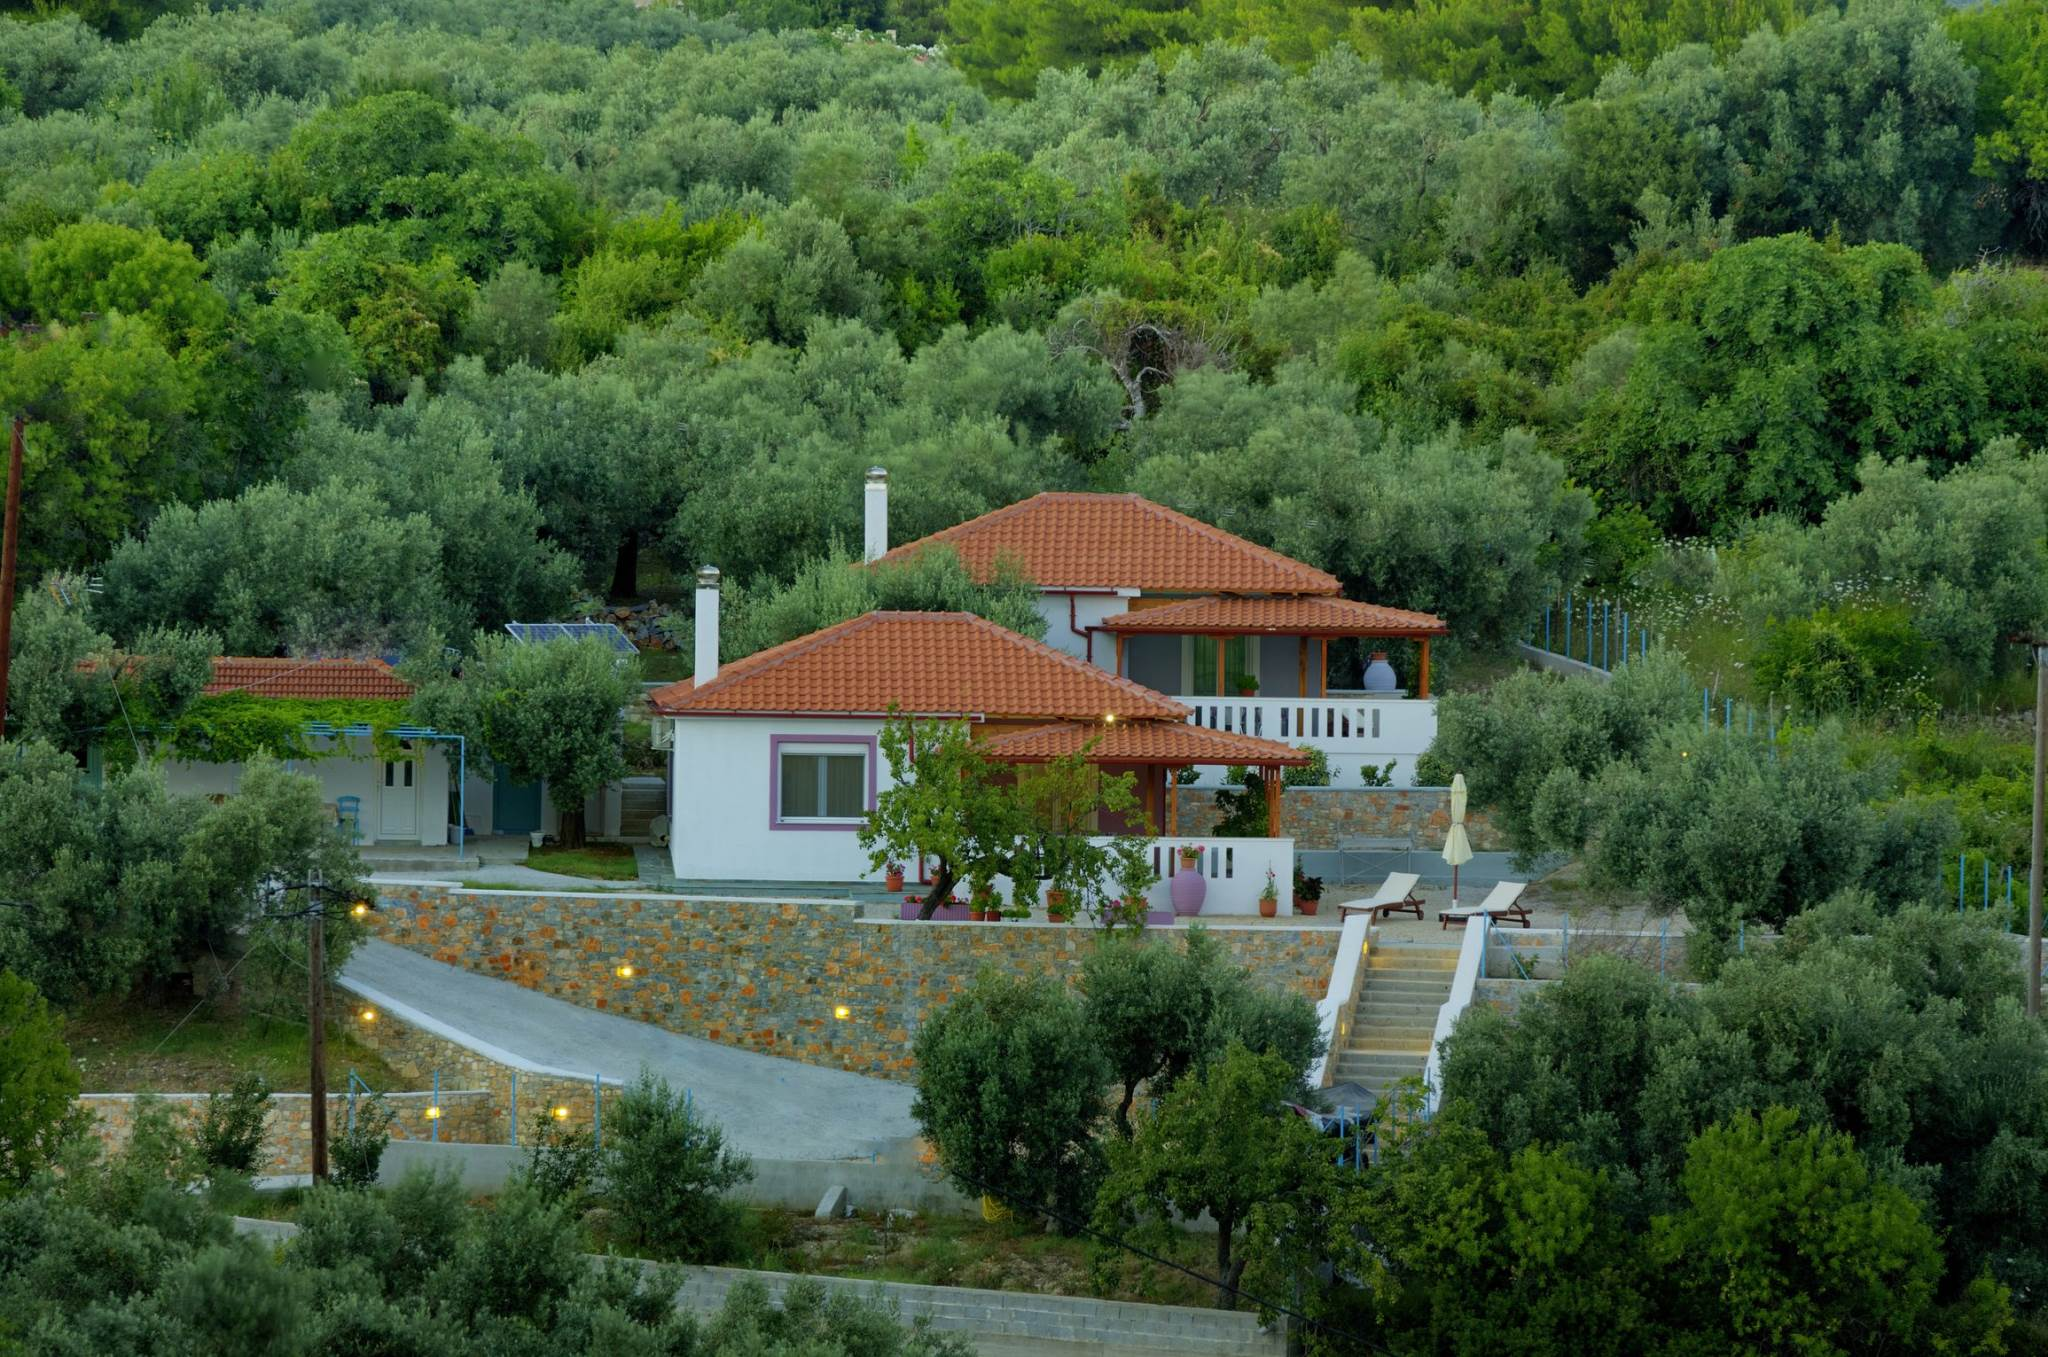 Rural and quite location , but close to amenities of the nearby village Votsi.